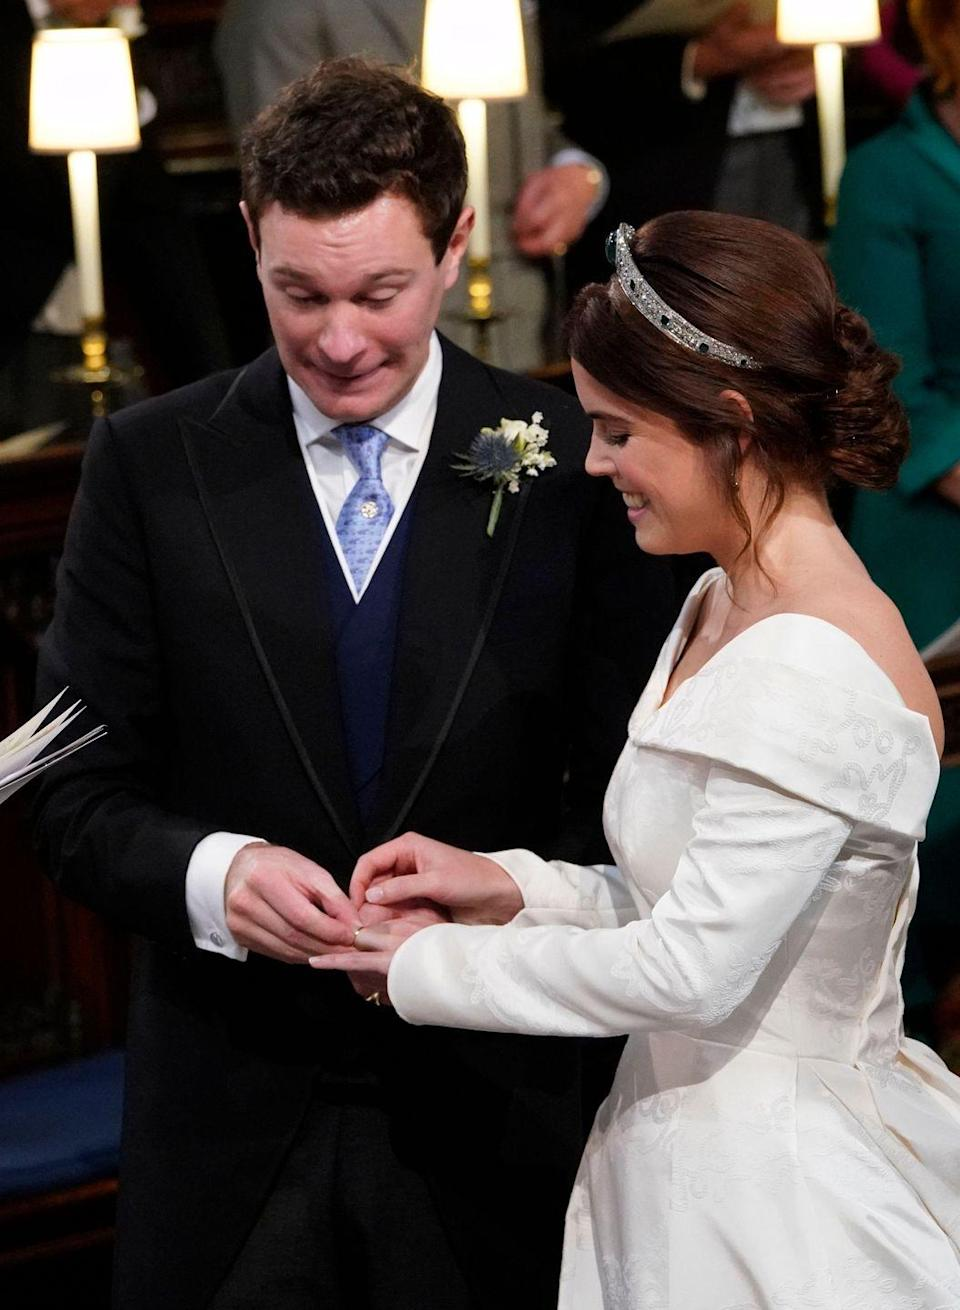 <p>Princess Eugenie announced her engagement to Jack Brooksbank in January 2018. The couple tied the knot in October 2018 with a big royal wedding in St George's Chapel at Windsor Castle. </p>